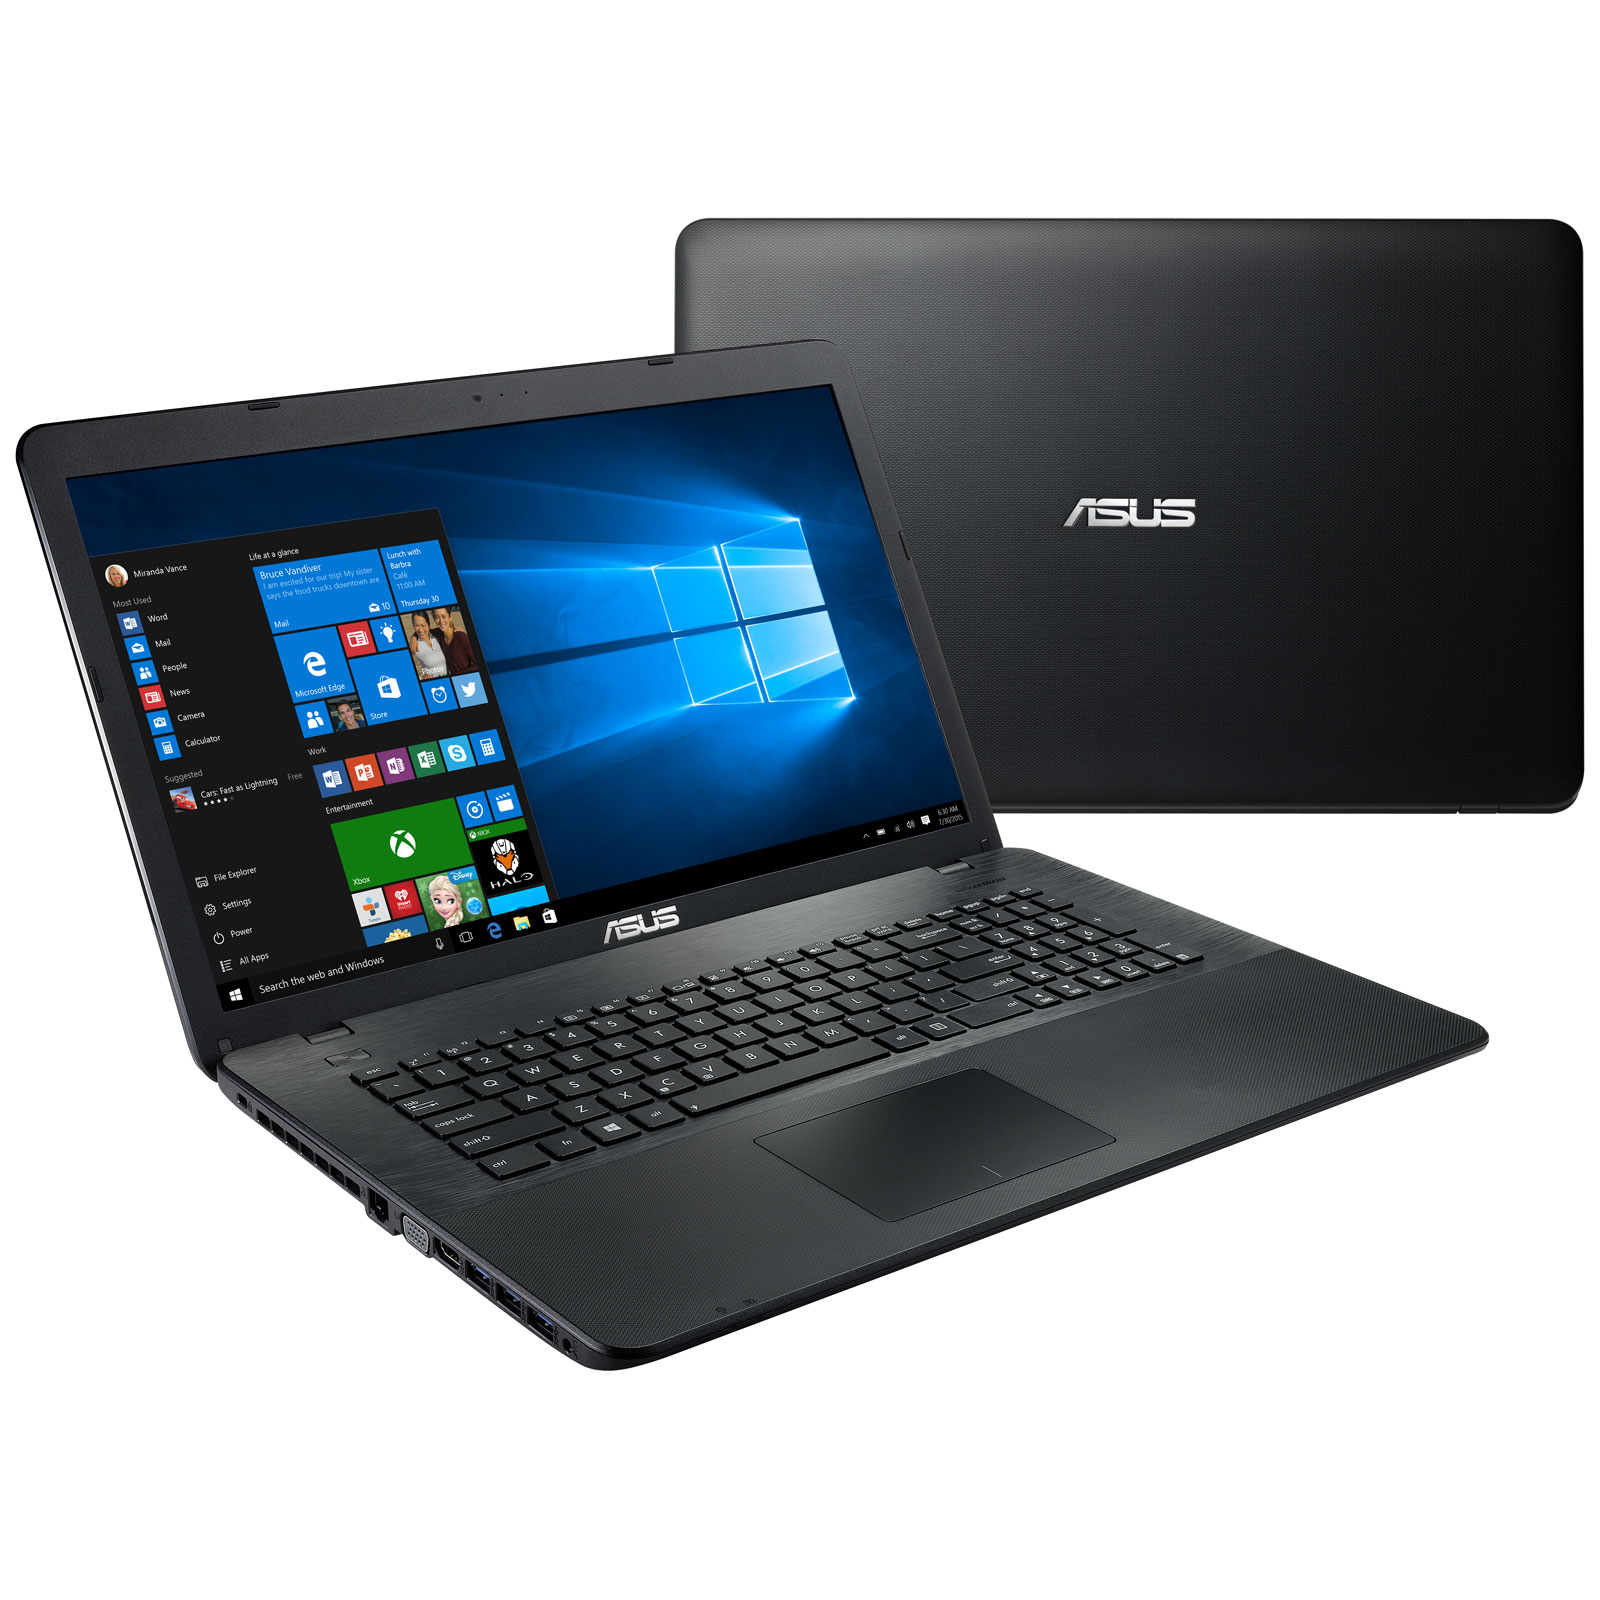 asus x751lav t4615t noir pc portable asus sur ldlc. Black Bedroom Furniture Sets. Home Design Ideas